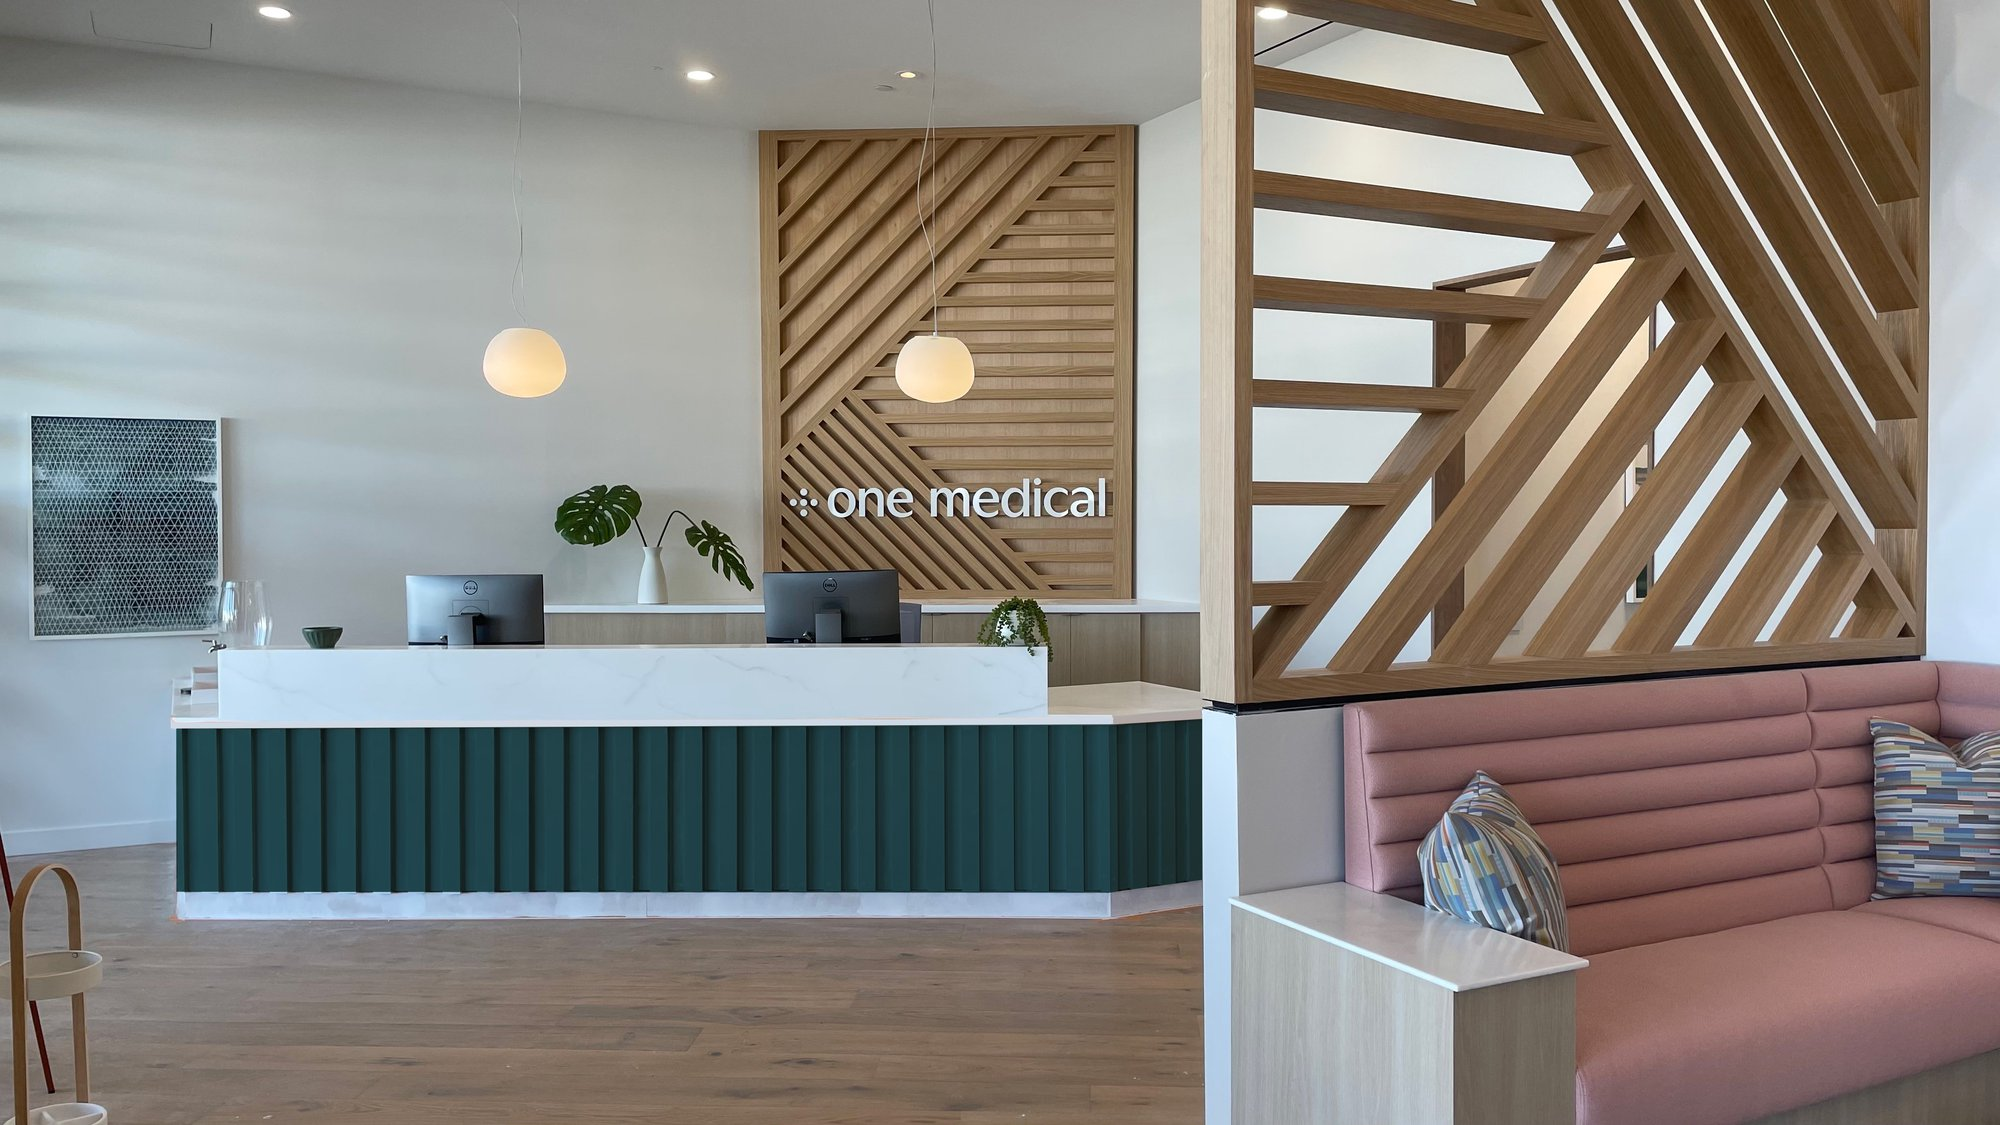 One Medical 2nd and PCH Office Photo